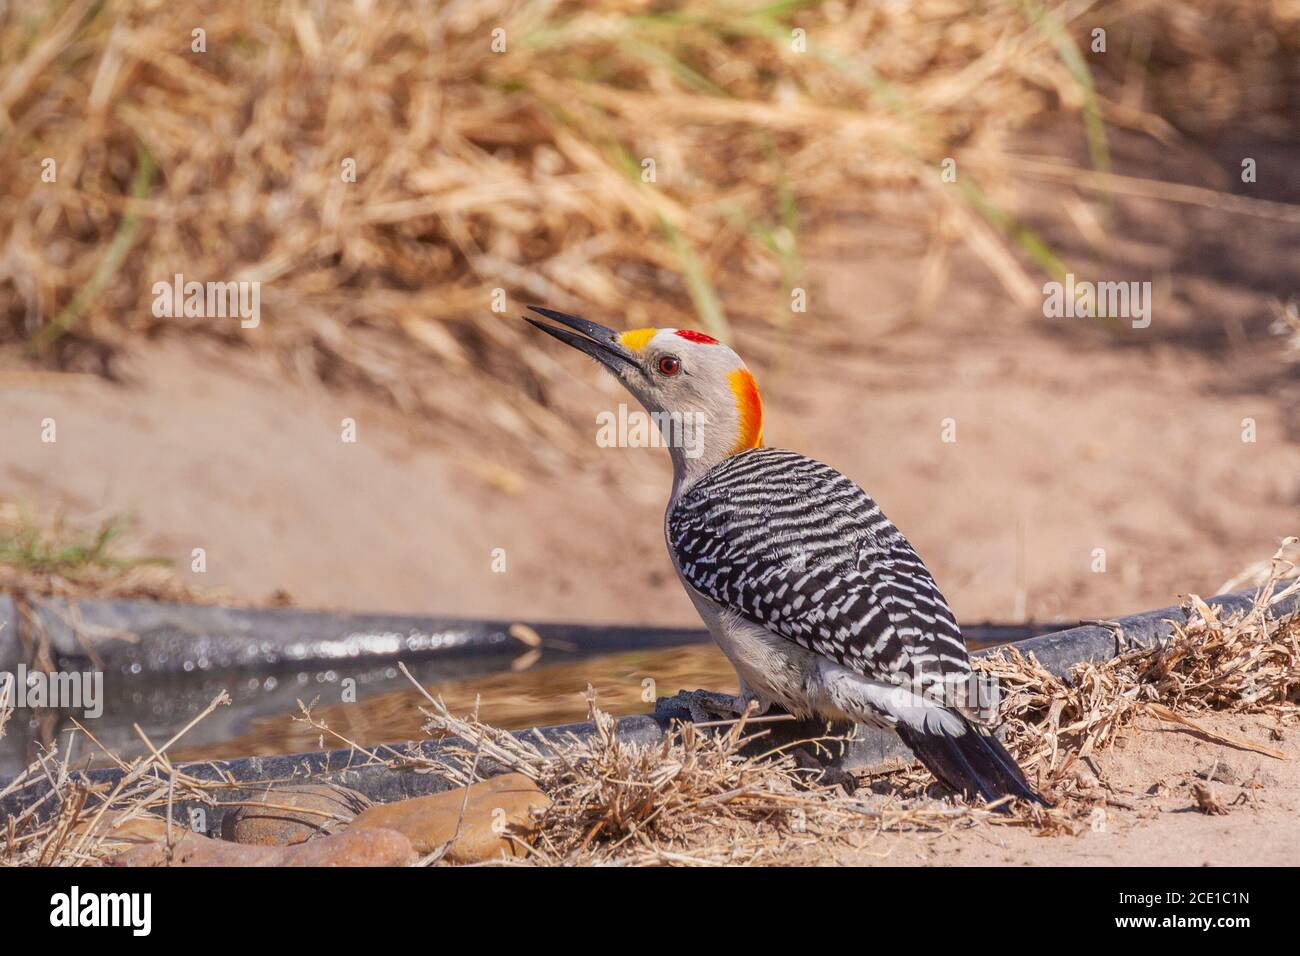 Golden-fronted Woodpecker, Melanerpes aurifrons, at the Javelina-Martin ranch and refuge near McAllen, Texas, in the Rio Grande Valley. Stock Photo